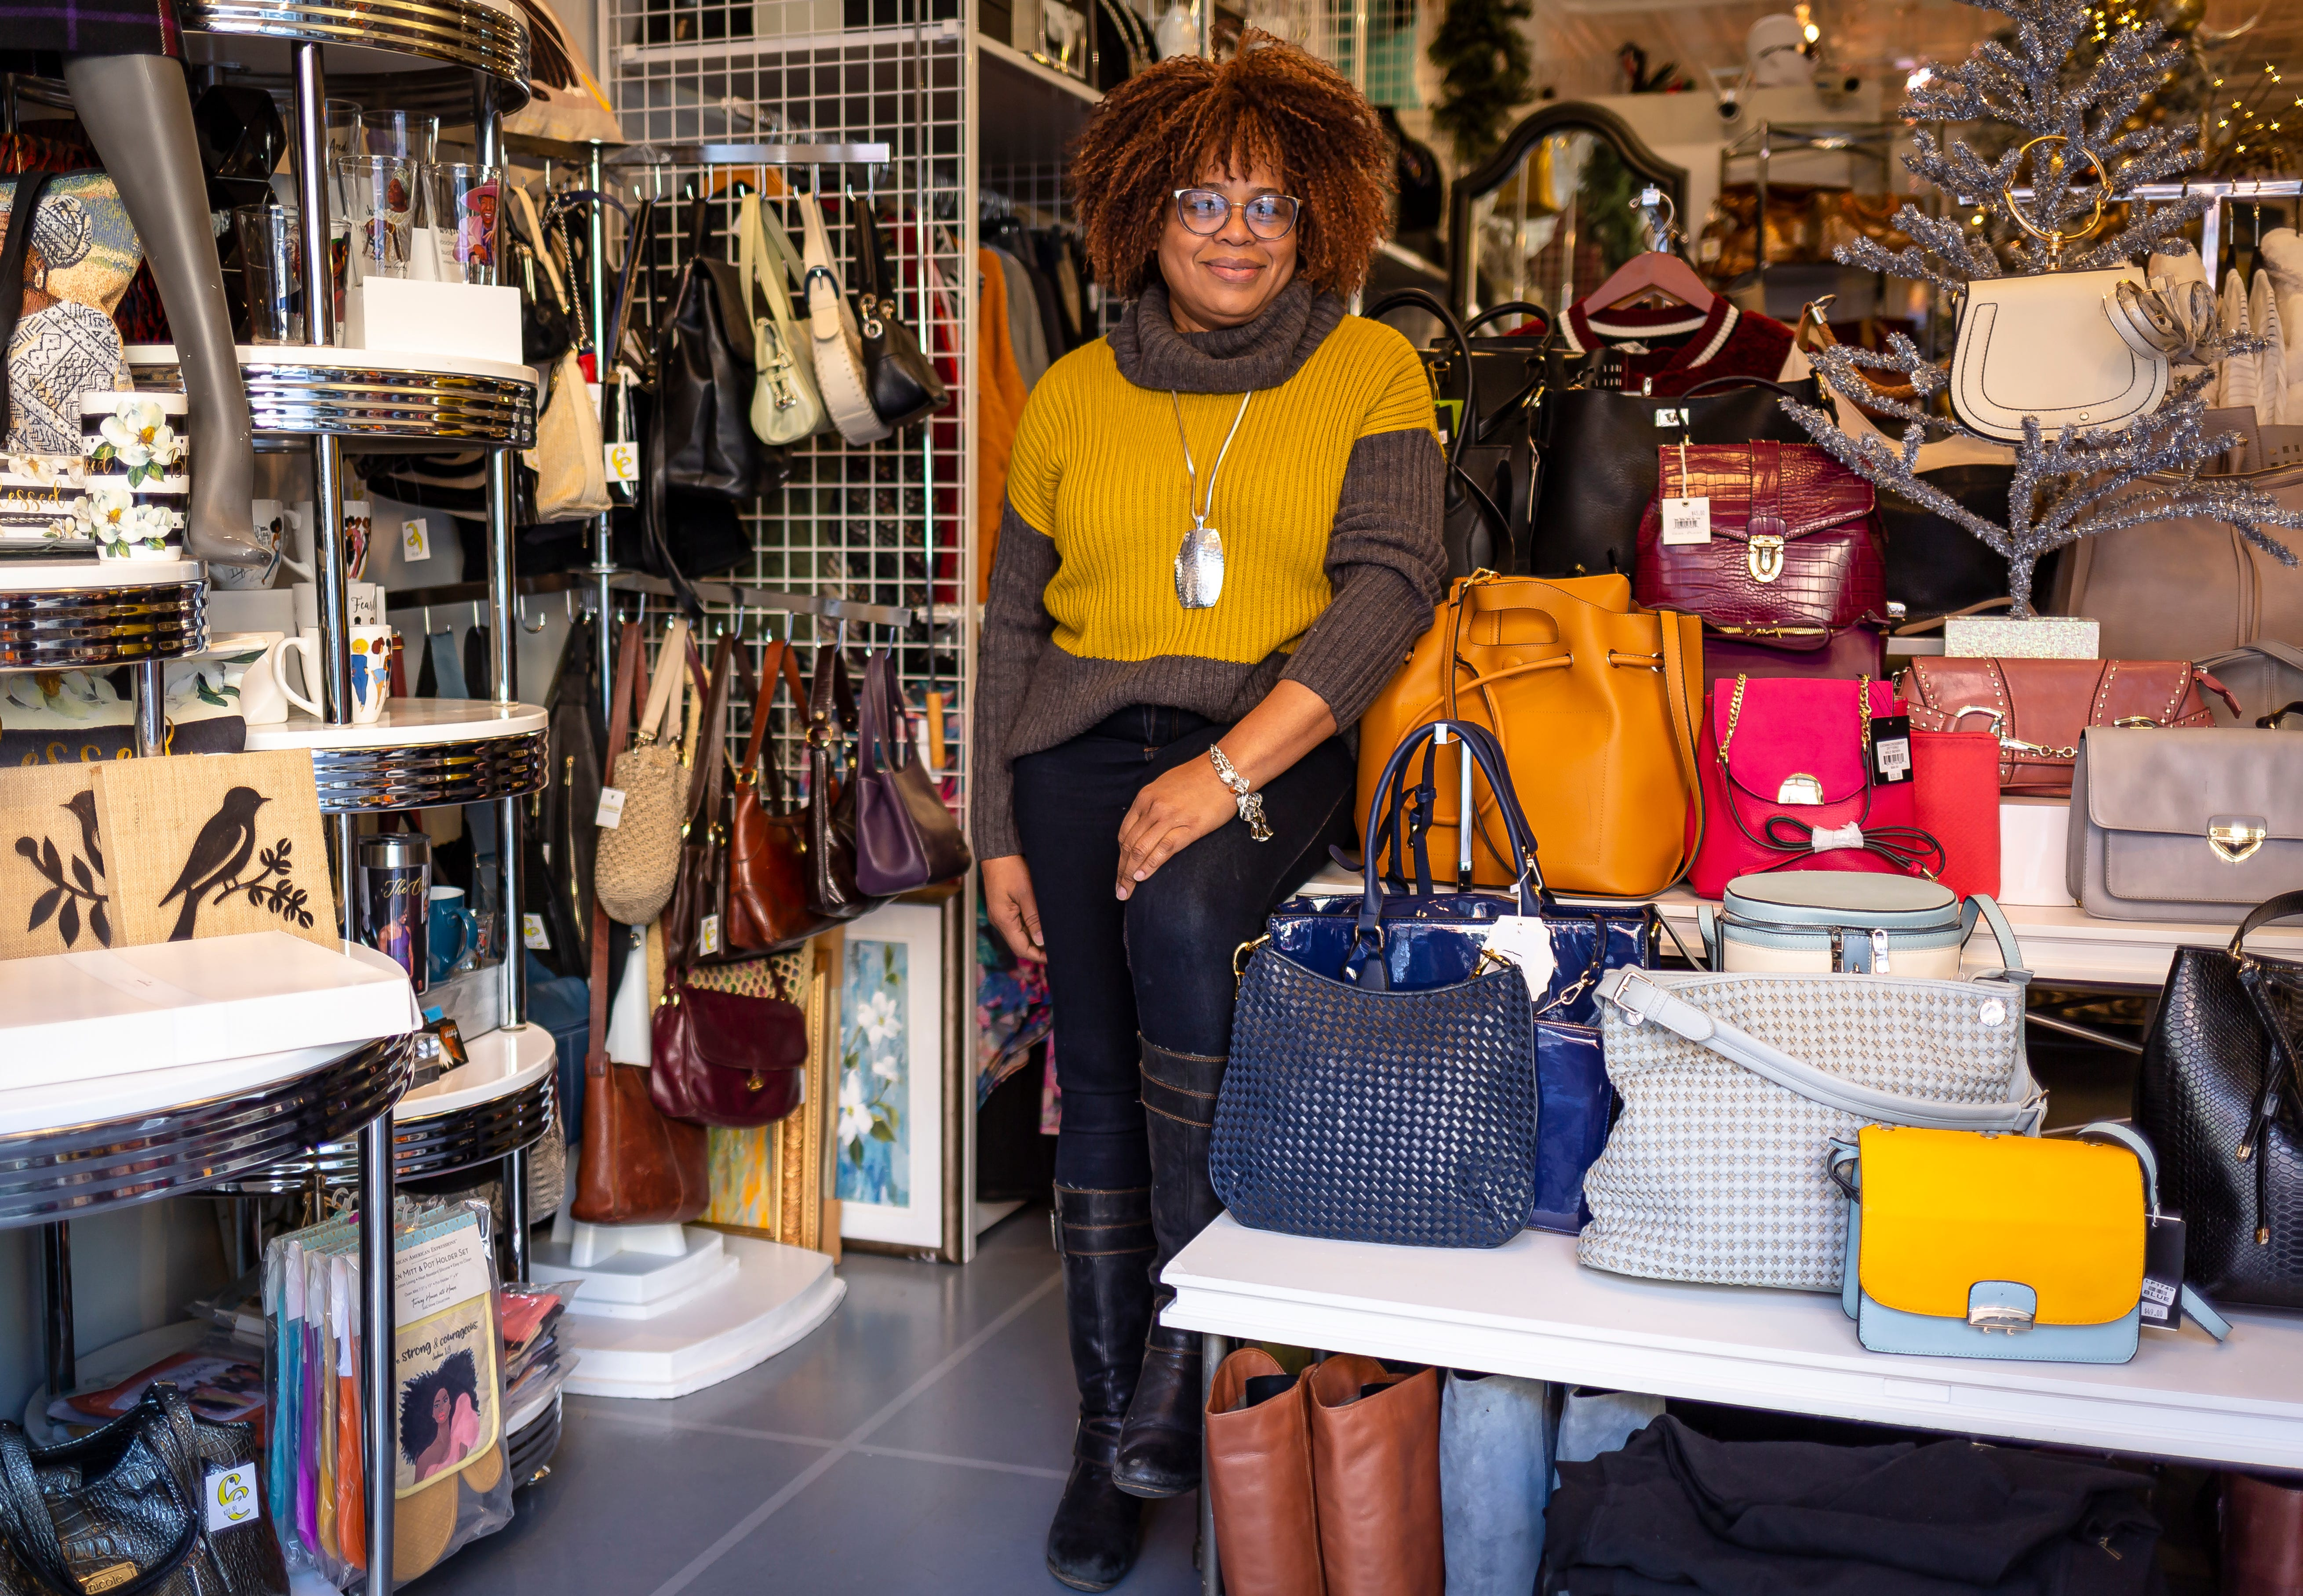 Corrine Campbell, the owner of Corrine's Closet, at 223 S. Sixth Street in Springfield, Ill. Campbell estimates she has seen about a 50% decrease in revenue over the last year during the COVID-19 pandemic, and the sales that Corrine's Closet have been just enough to keep the store open and operational. [Justin L. Fowler/The State Journal-Register]